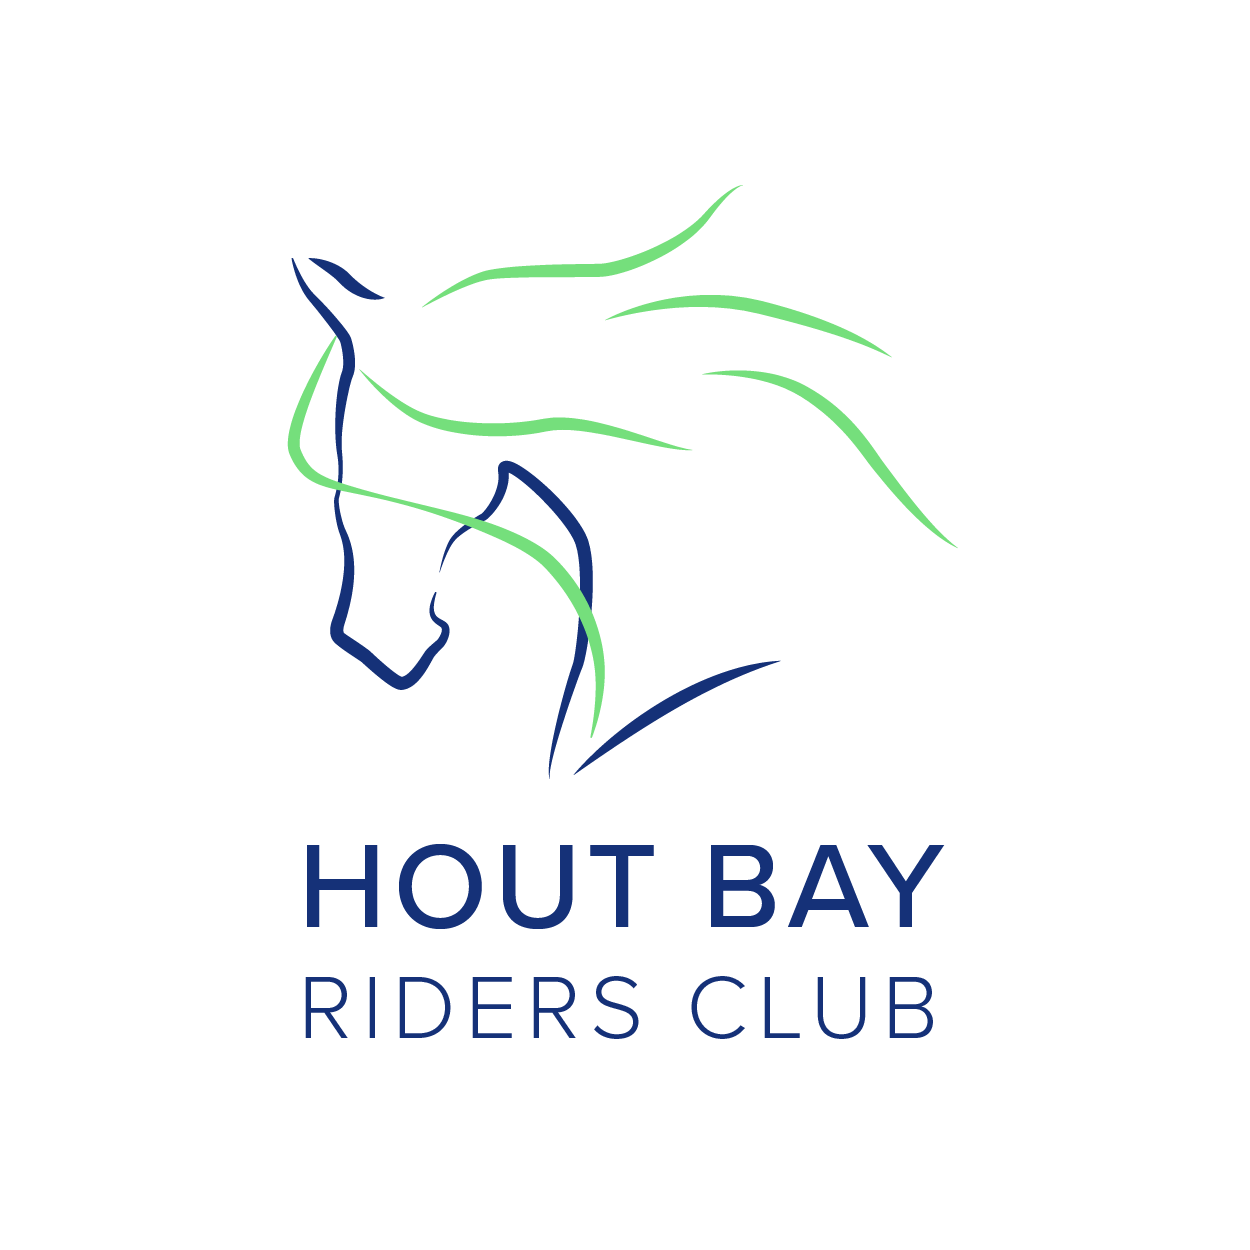 Hout Bay Riders Club